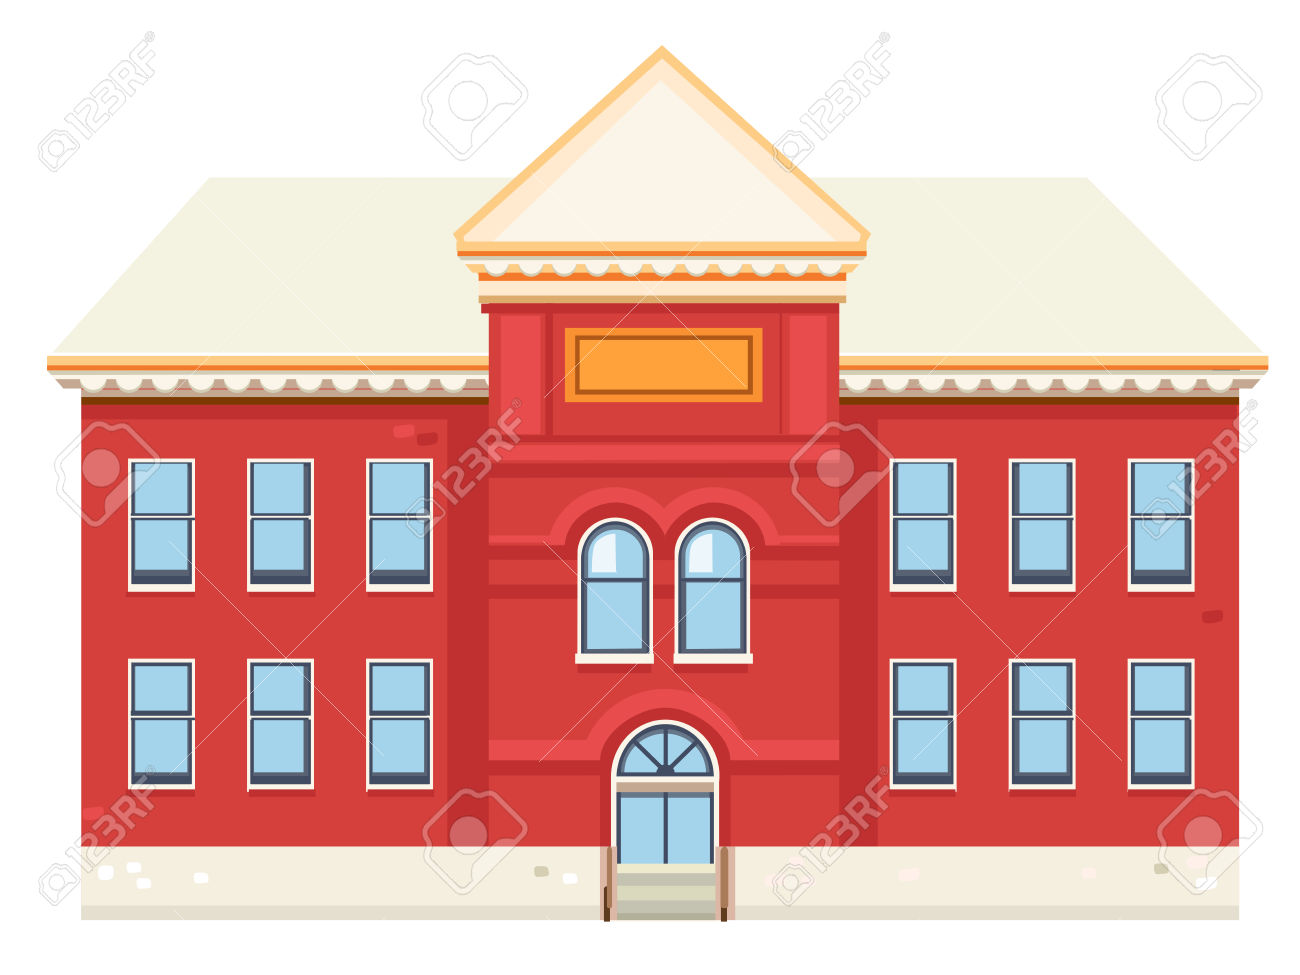 Red Brick Building Royalty Free Cliparts, Vectors, And Stock.